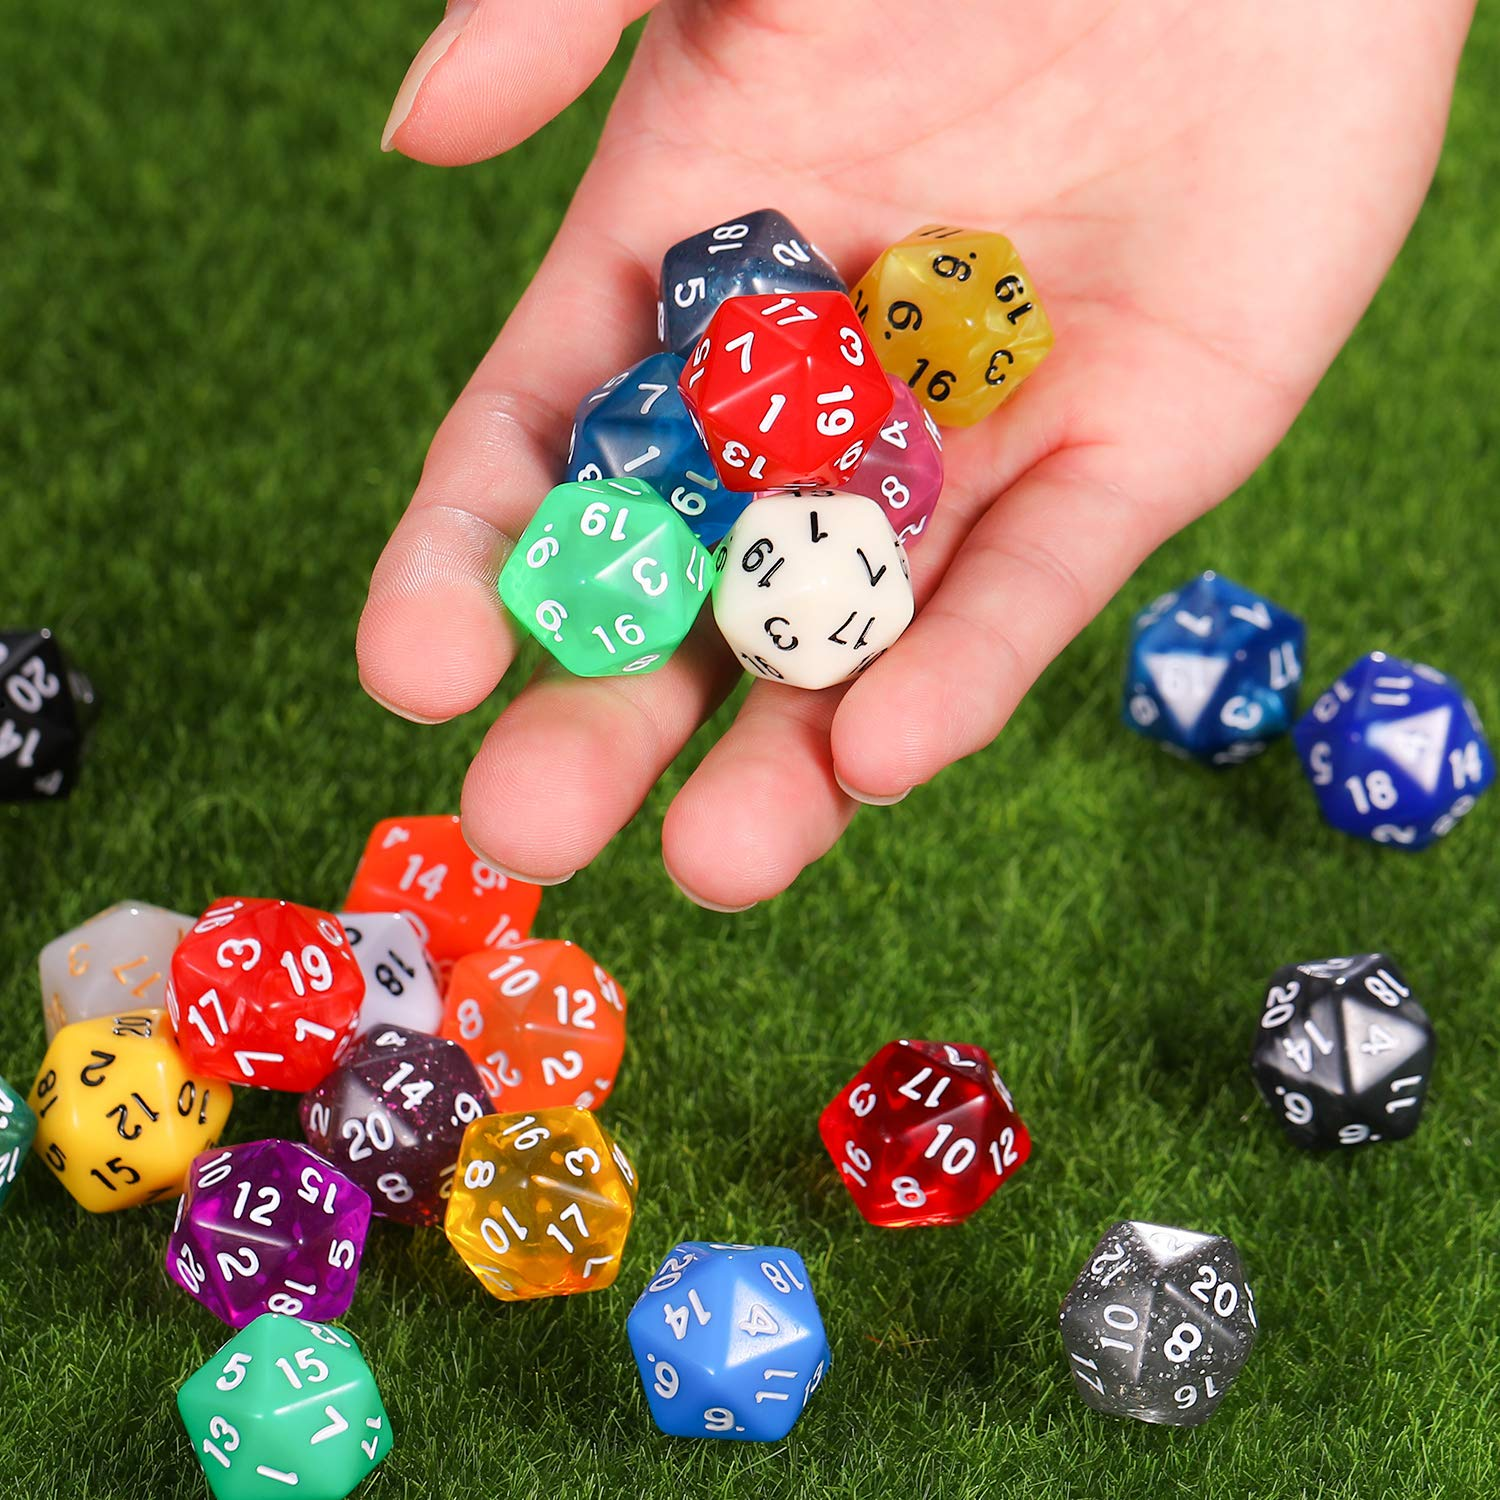 Color Set 5, D6 TecUnite 25 Pieces Polyhedral Dice Set with Black Pouch for DND RPG MTG and Other Table Games with Random Multi Colored Assortment